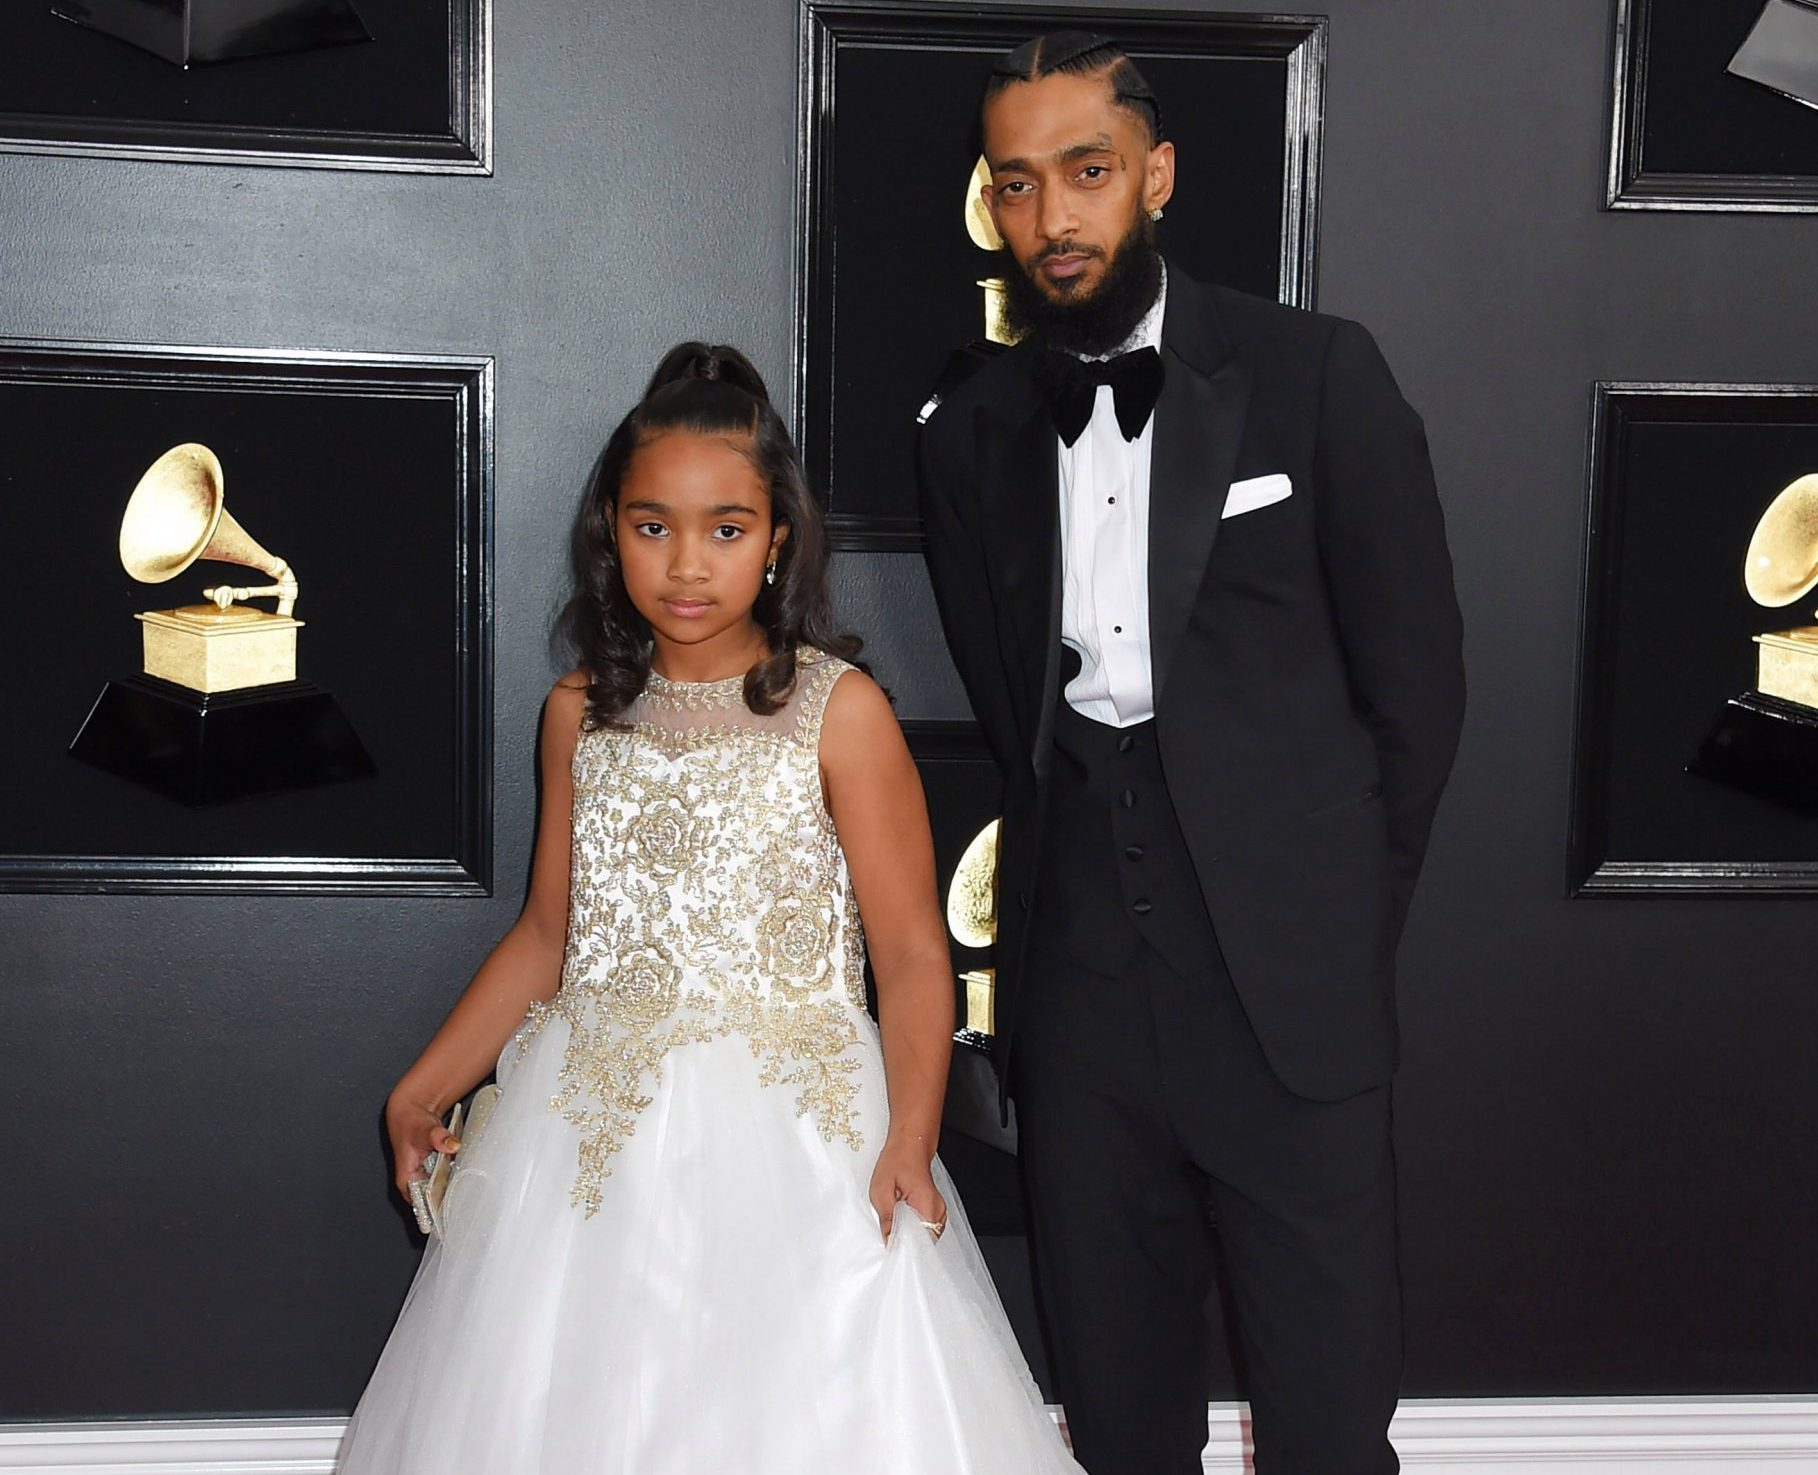 Lauren London And Samantha Smith Wish Nipsey Hussle's Daughter, Emani A Happy Birthday - Here Are The Emotional Messages